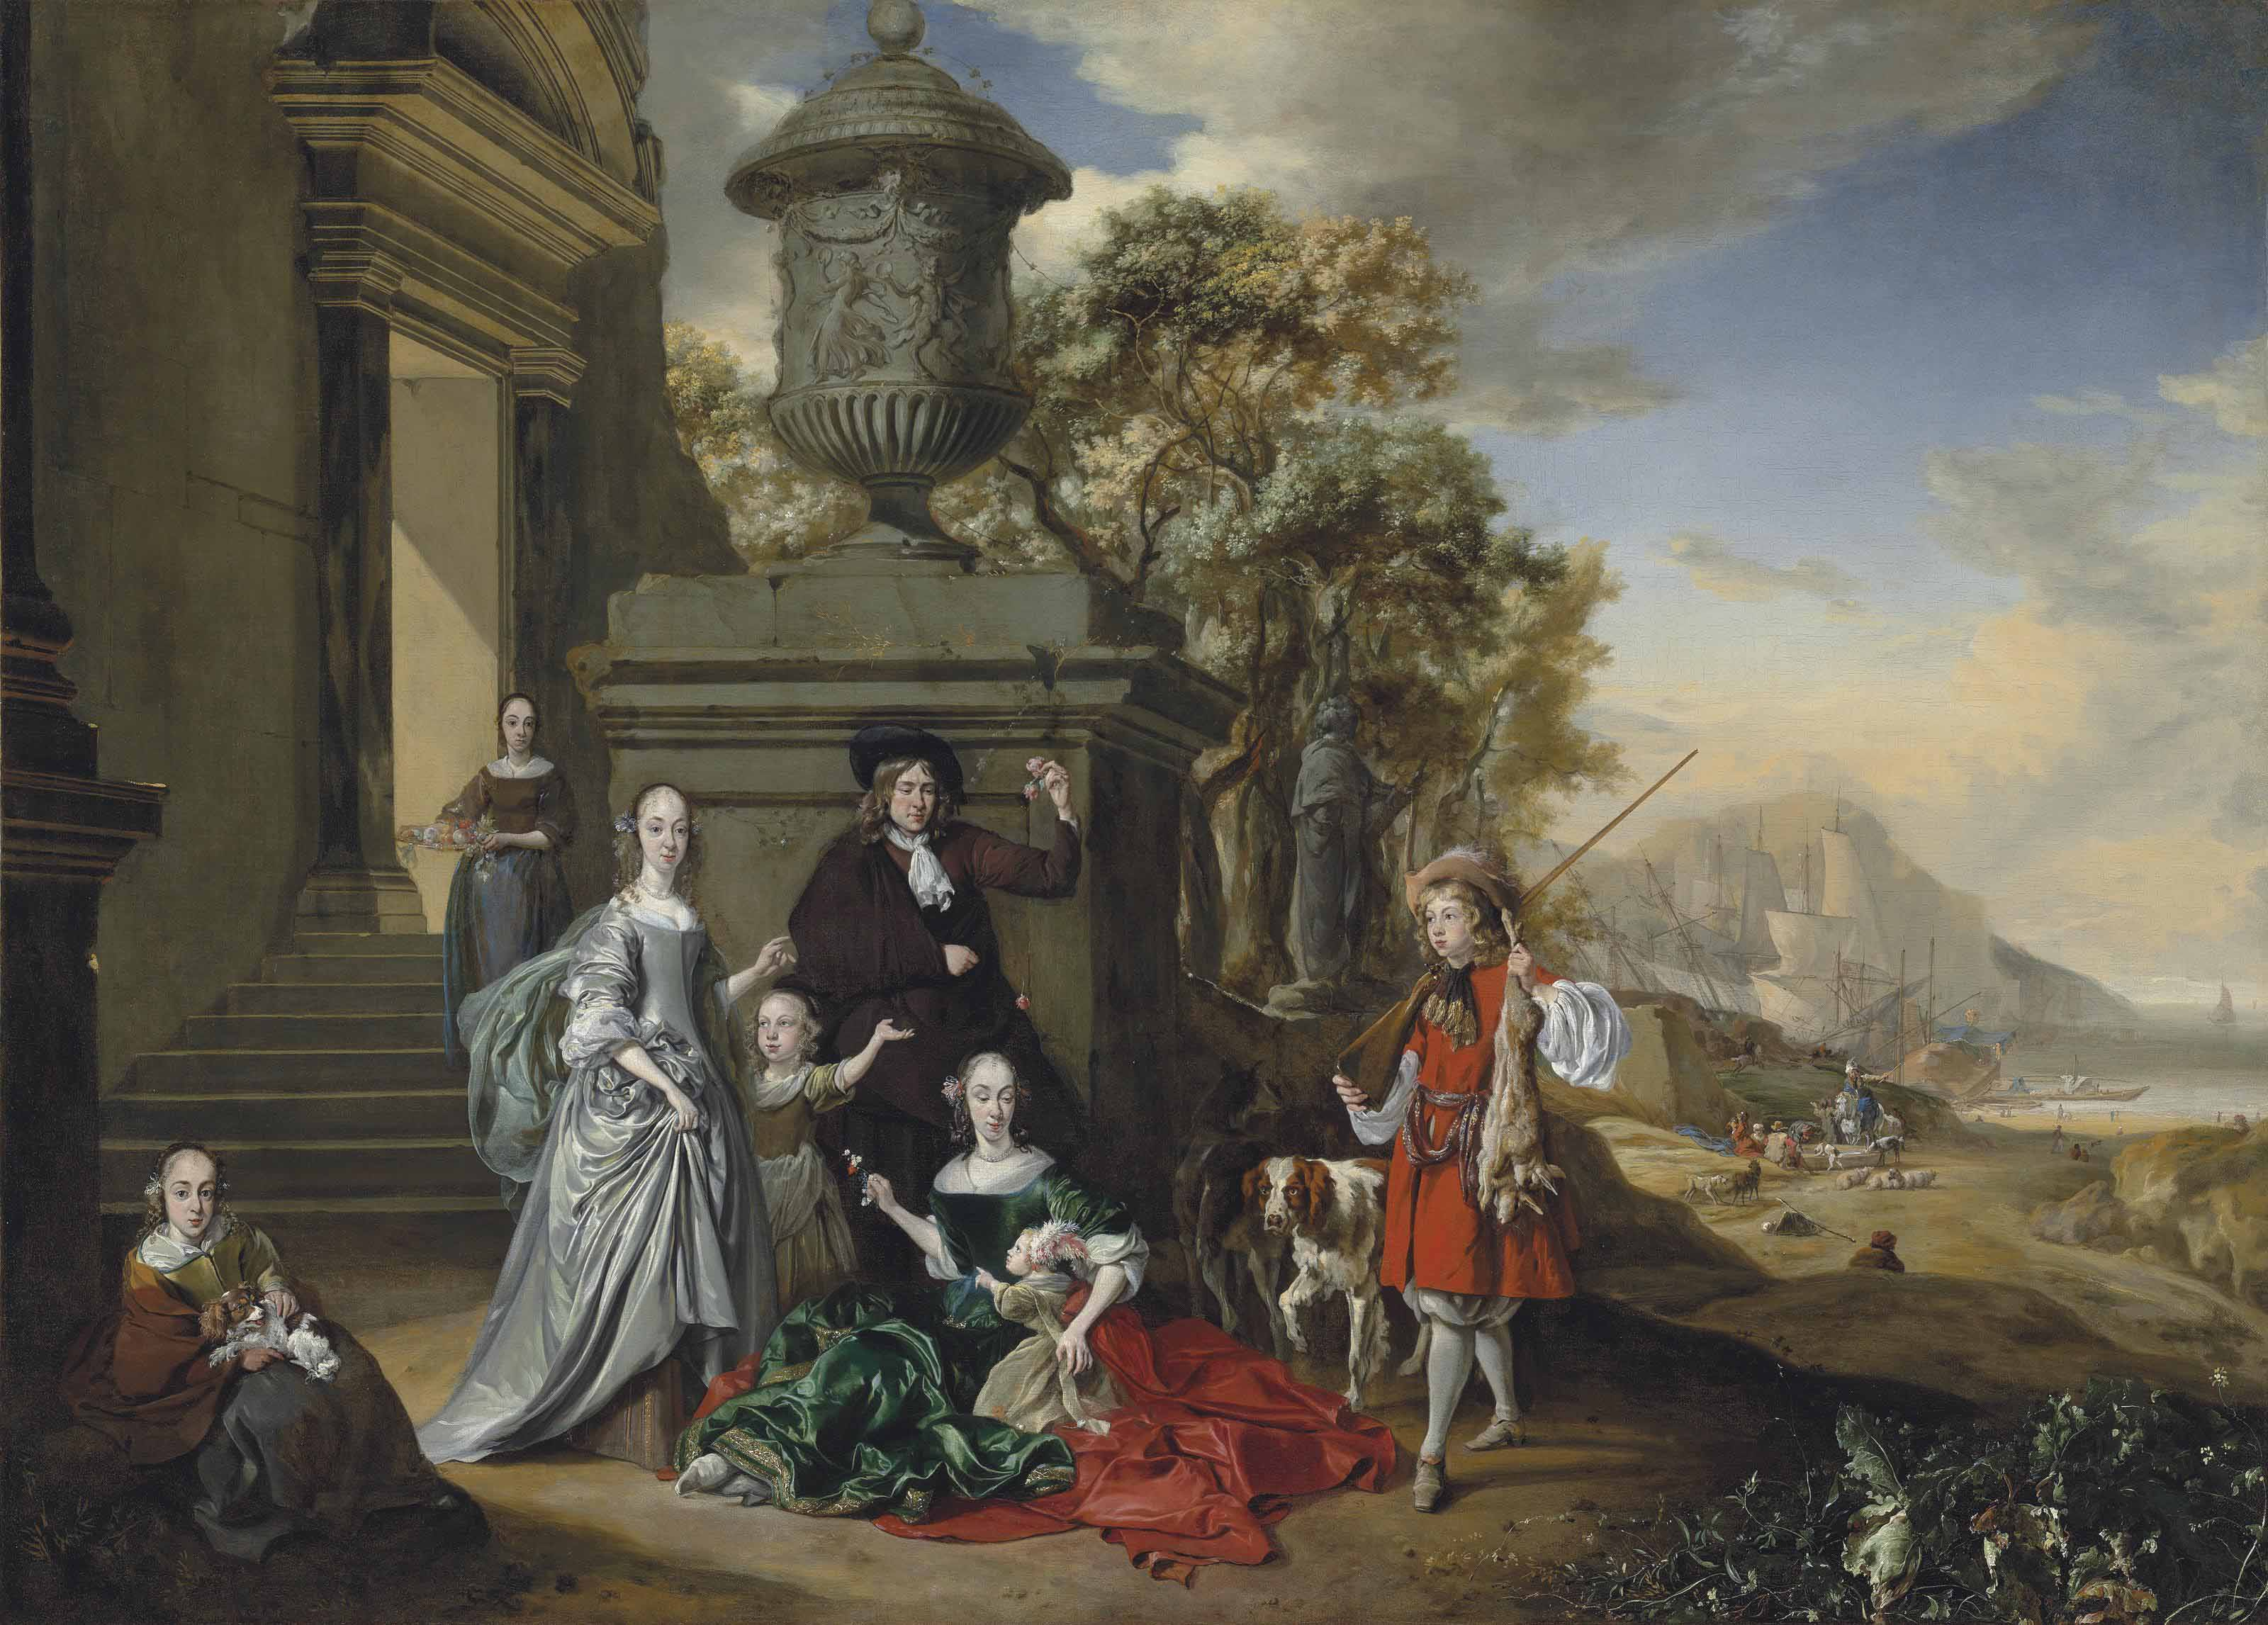 A group portrait of an elegantly dressed family by a classical building, with a boy approaching, holding game and a rifle, a coastal landscape beyond